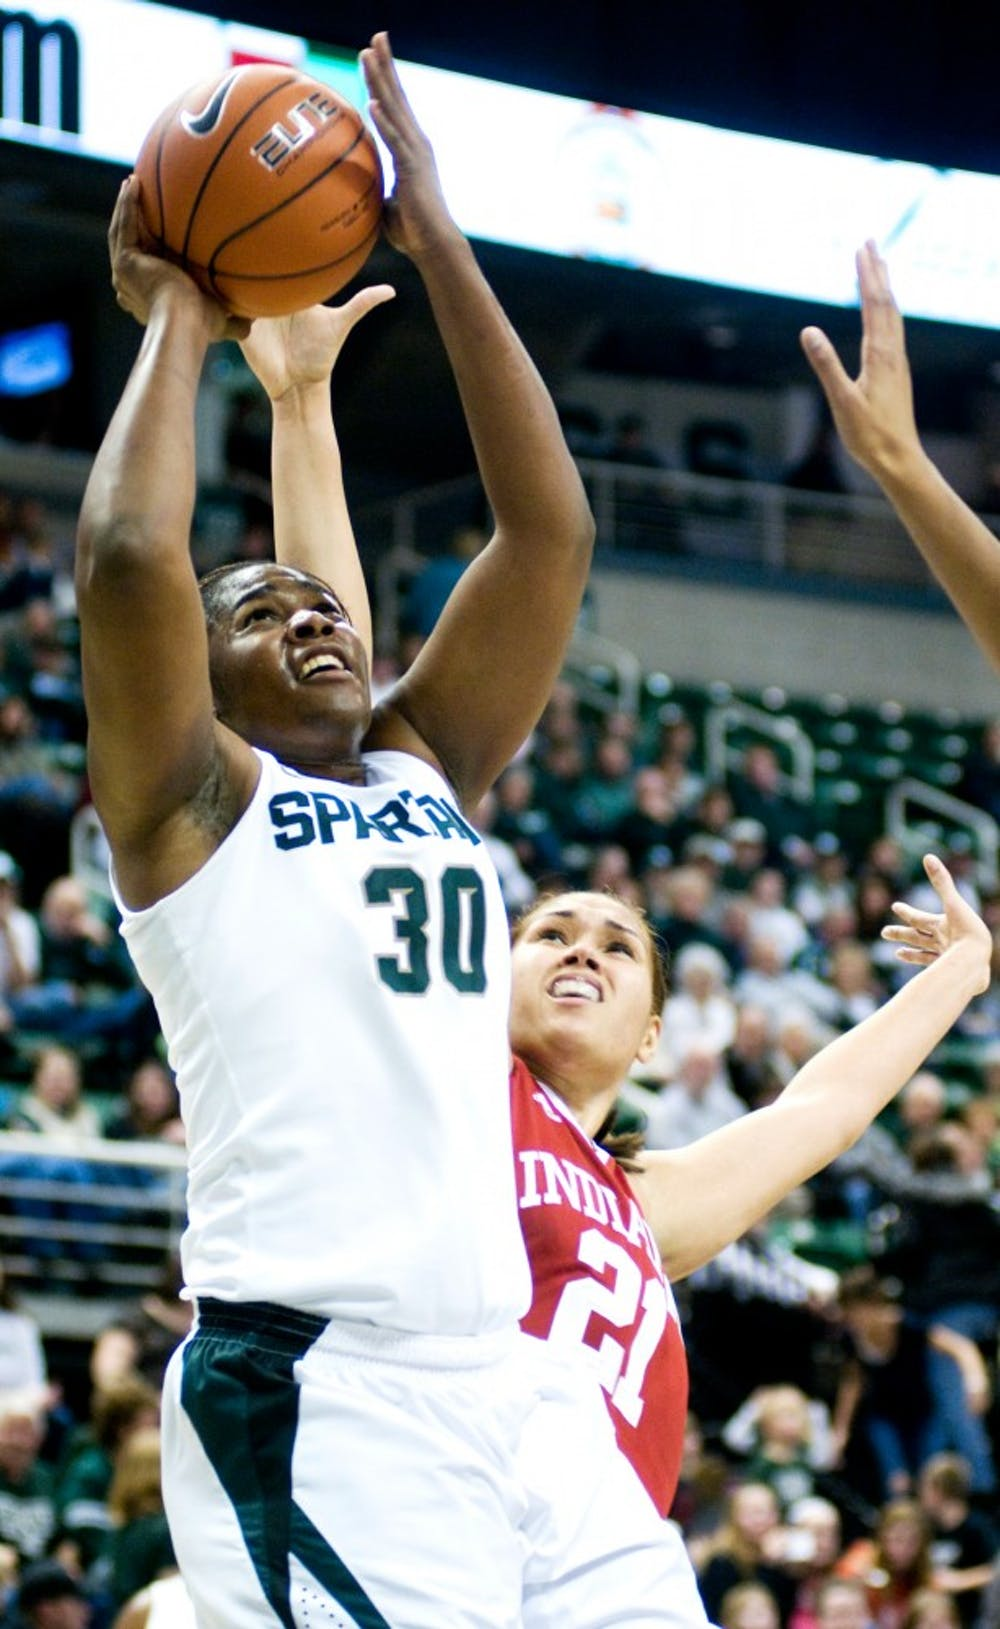 Red shirt senior Lykendra Johnson goes up for a lay up against forward Danilsa Andujar Thursday night at Breslin Center. The spartans pulled away in the second half coming up with a 67-47 victory over the Indiana Hoosiers. Aaron Snyder/The State News.